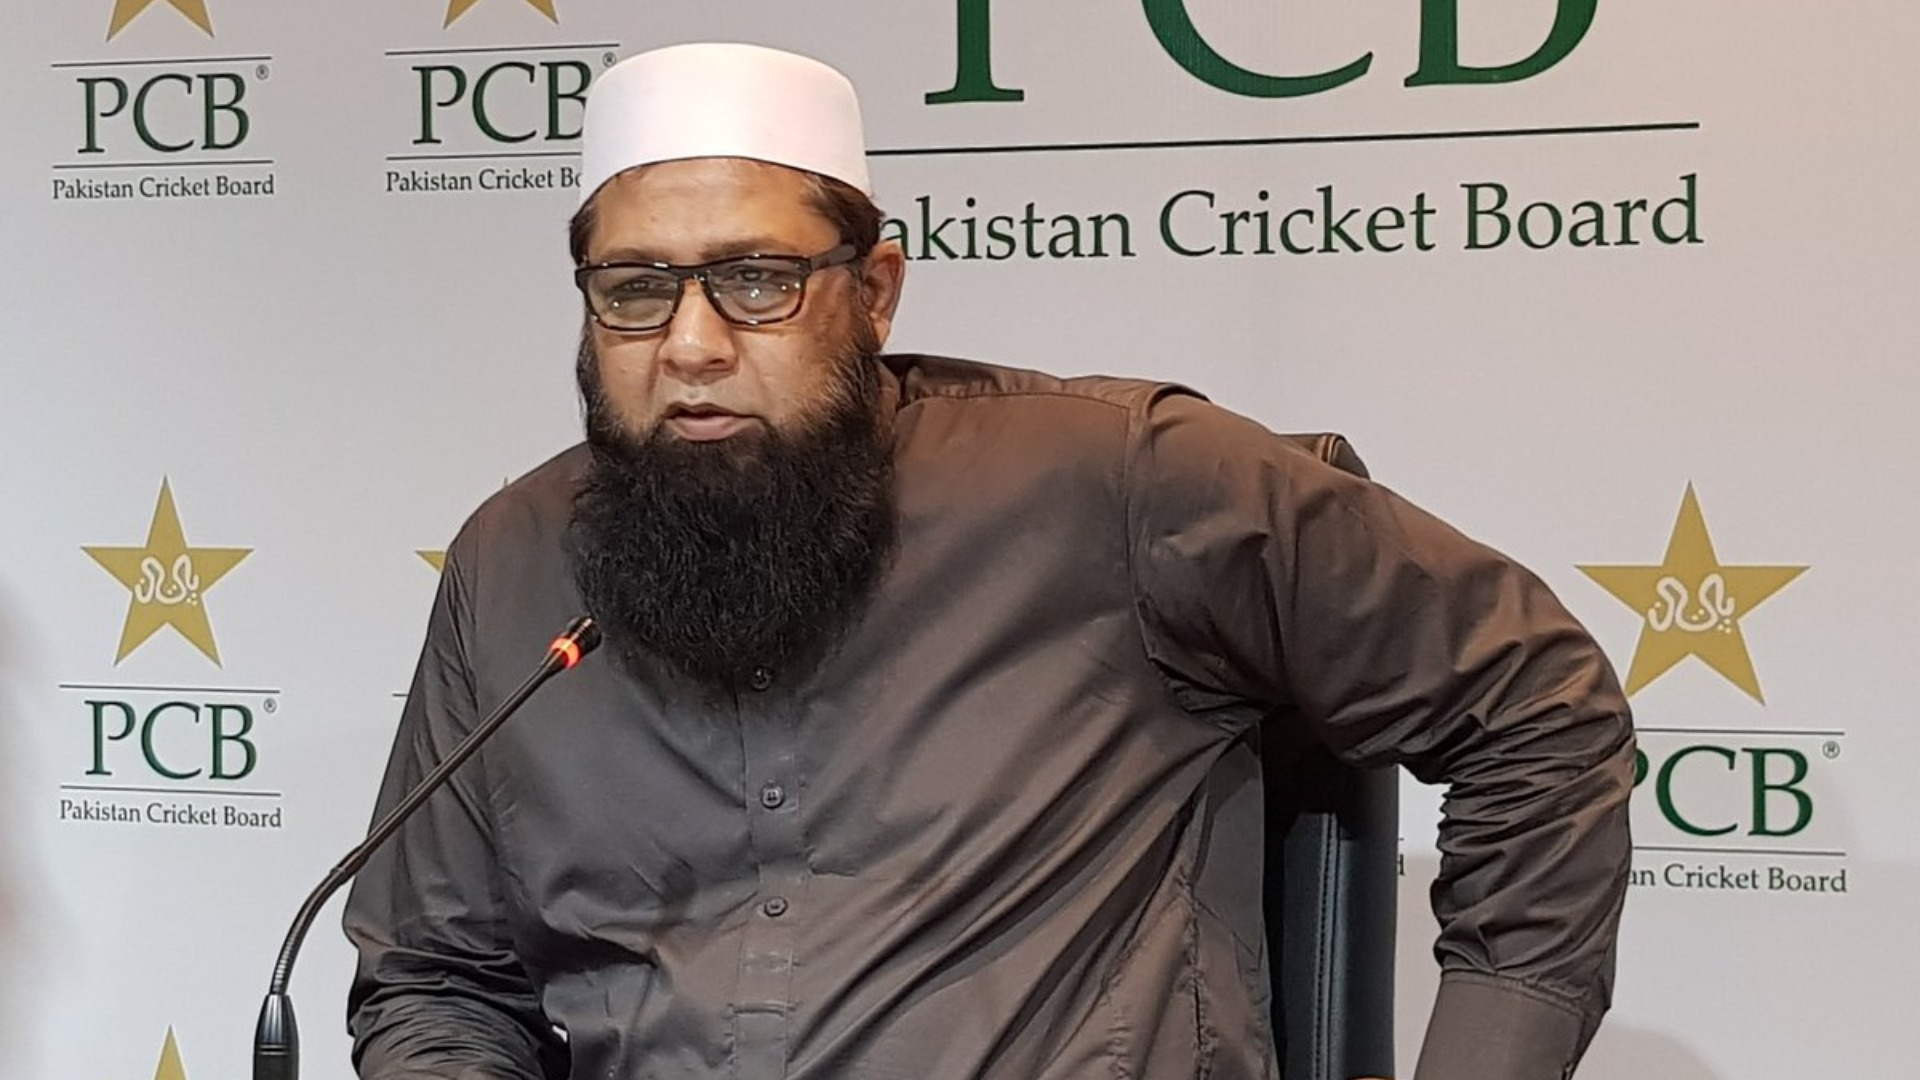 Inzamam to step down as Pakistan selector